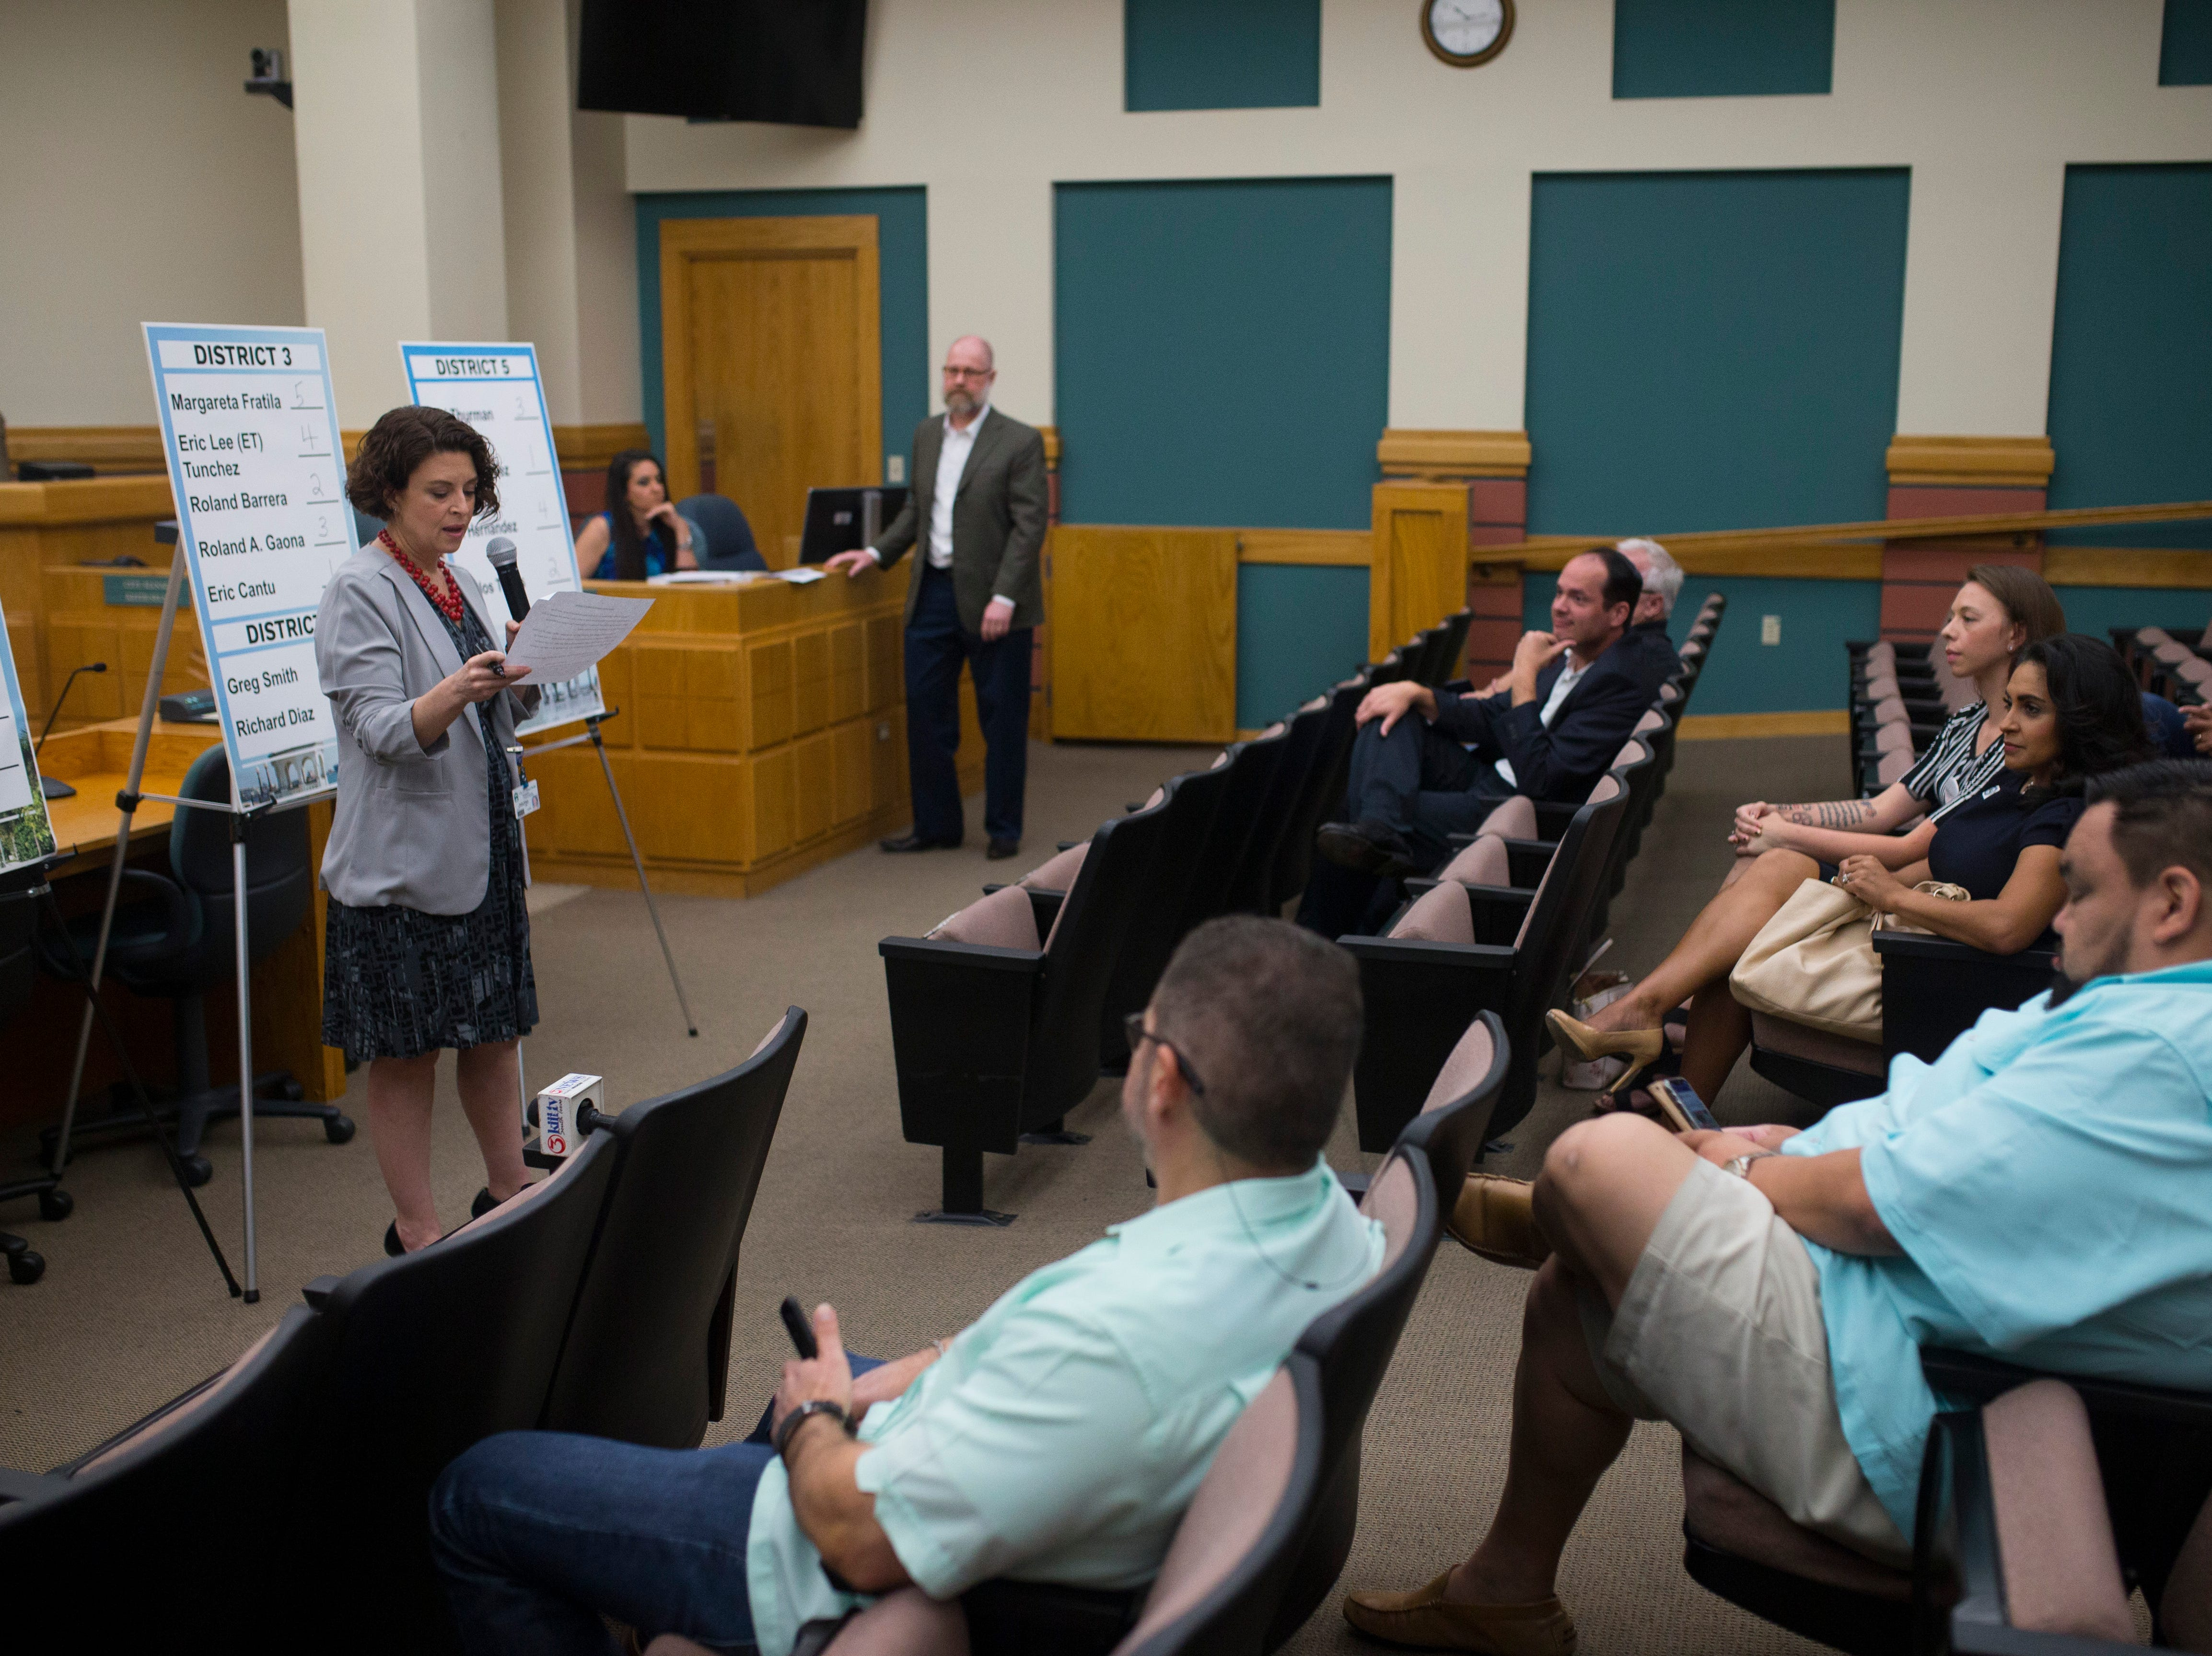 Mayor and City Hall candidates gather to draw for their ballot order on Thursday, August 23, 2018 at City Hall.